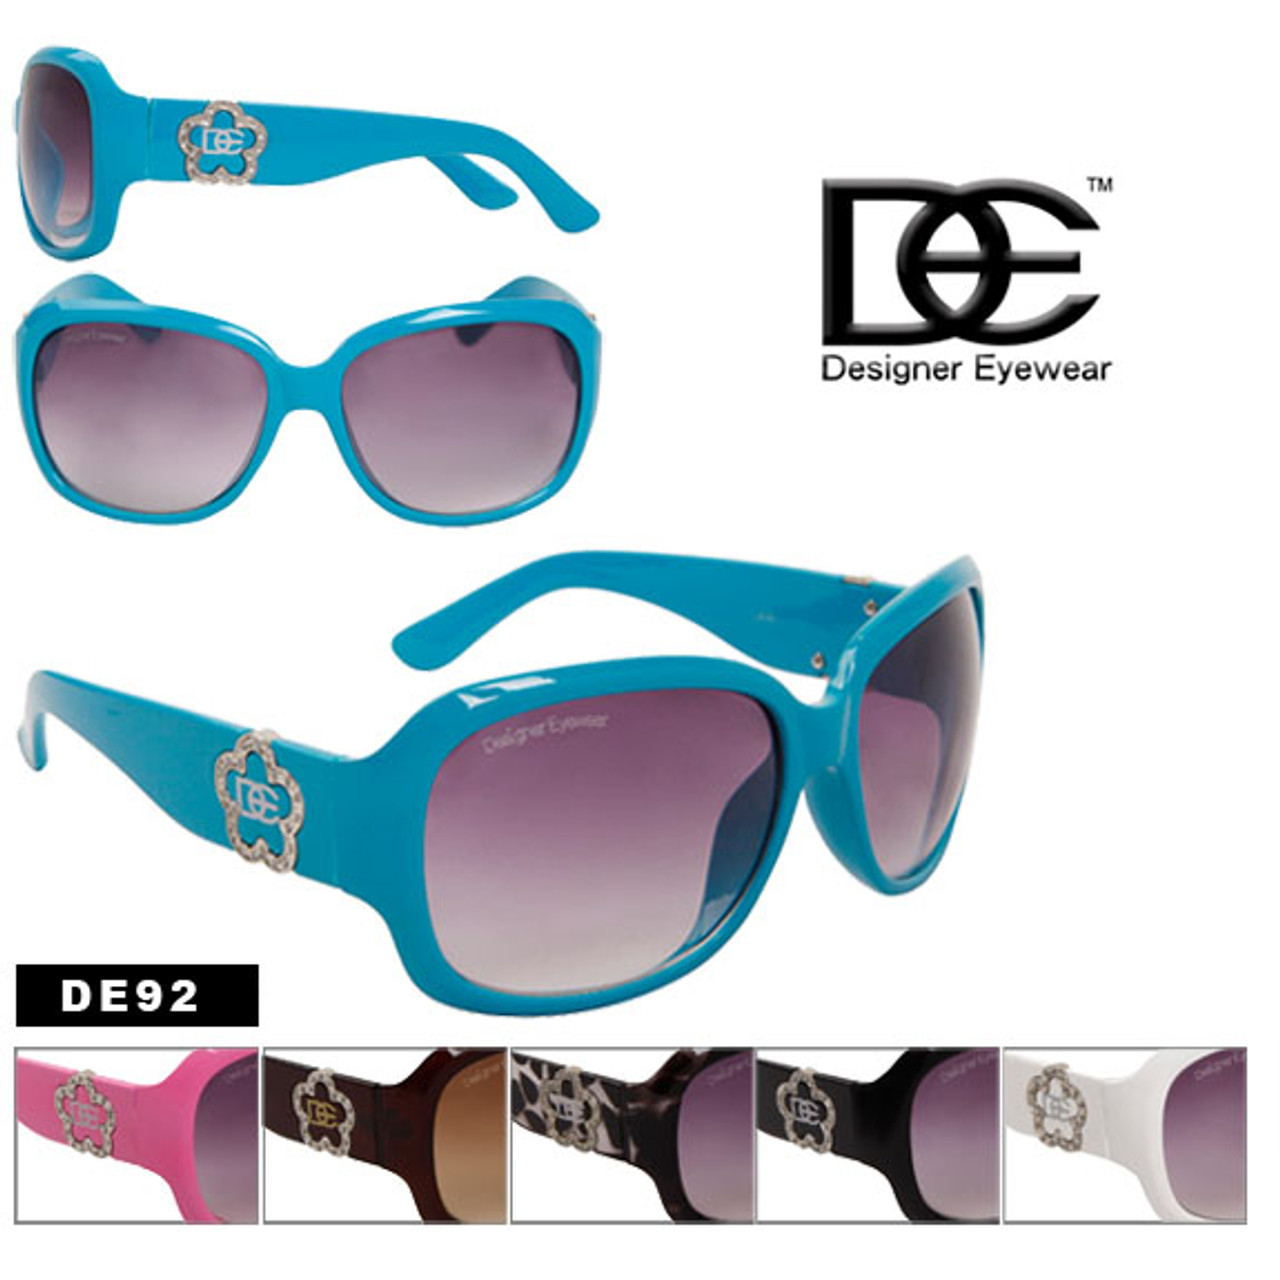 VIntage DE Wholesale Sunglasses